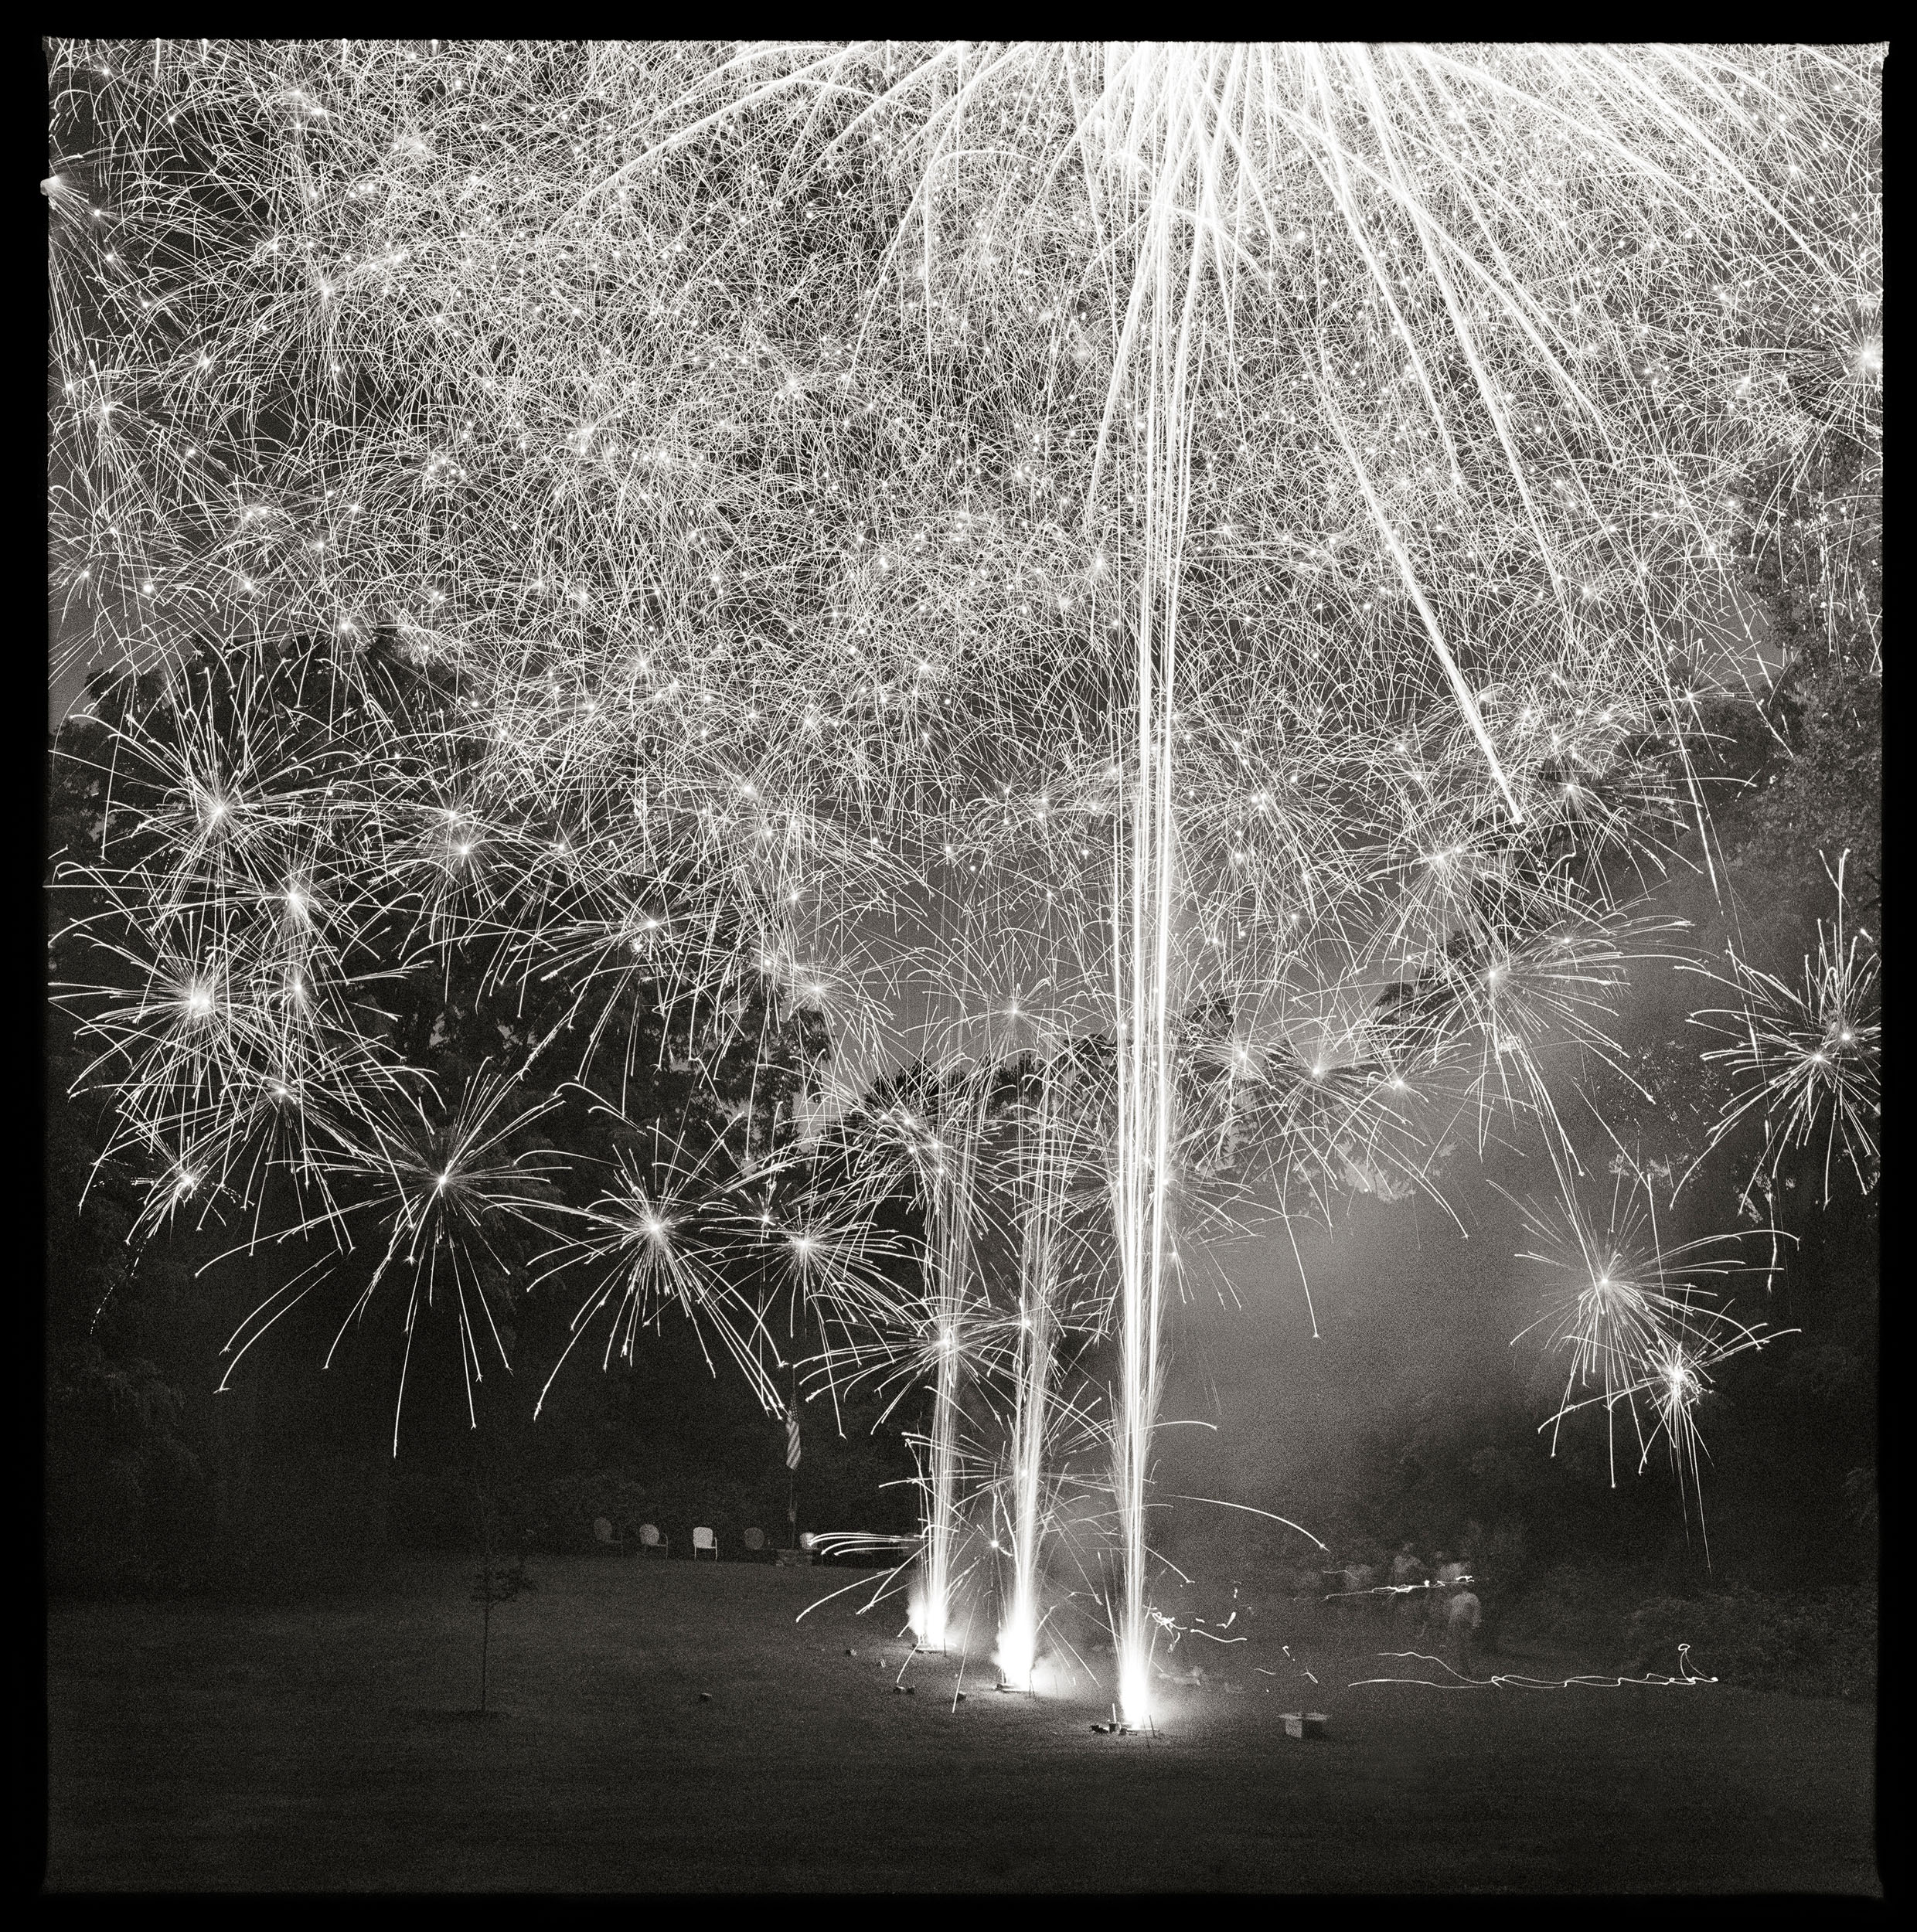 Eric Kunsman, Palmyra, NY- July 4th 2015, Palmyra, NY, 2015 20 x 20 inches Archival Pigment Print